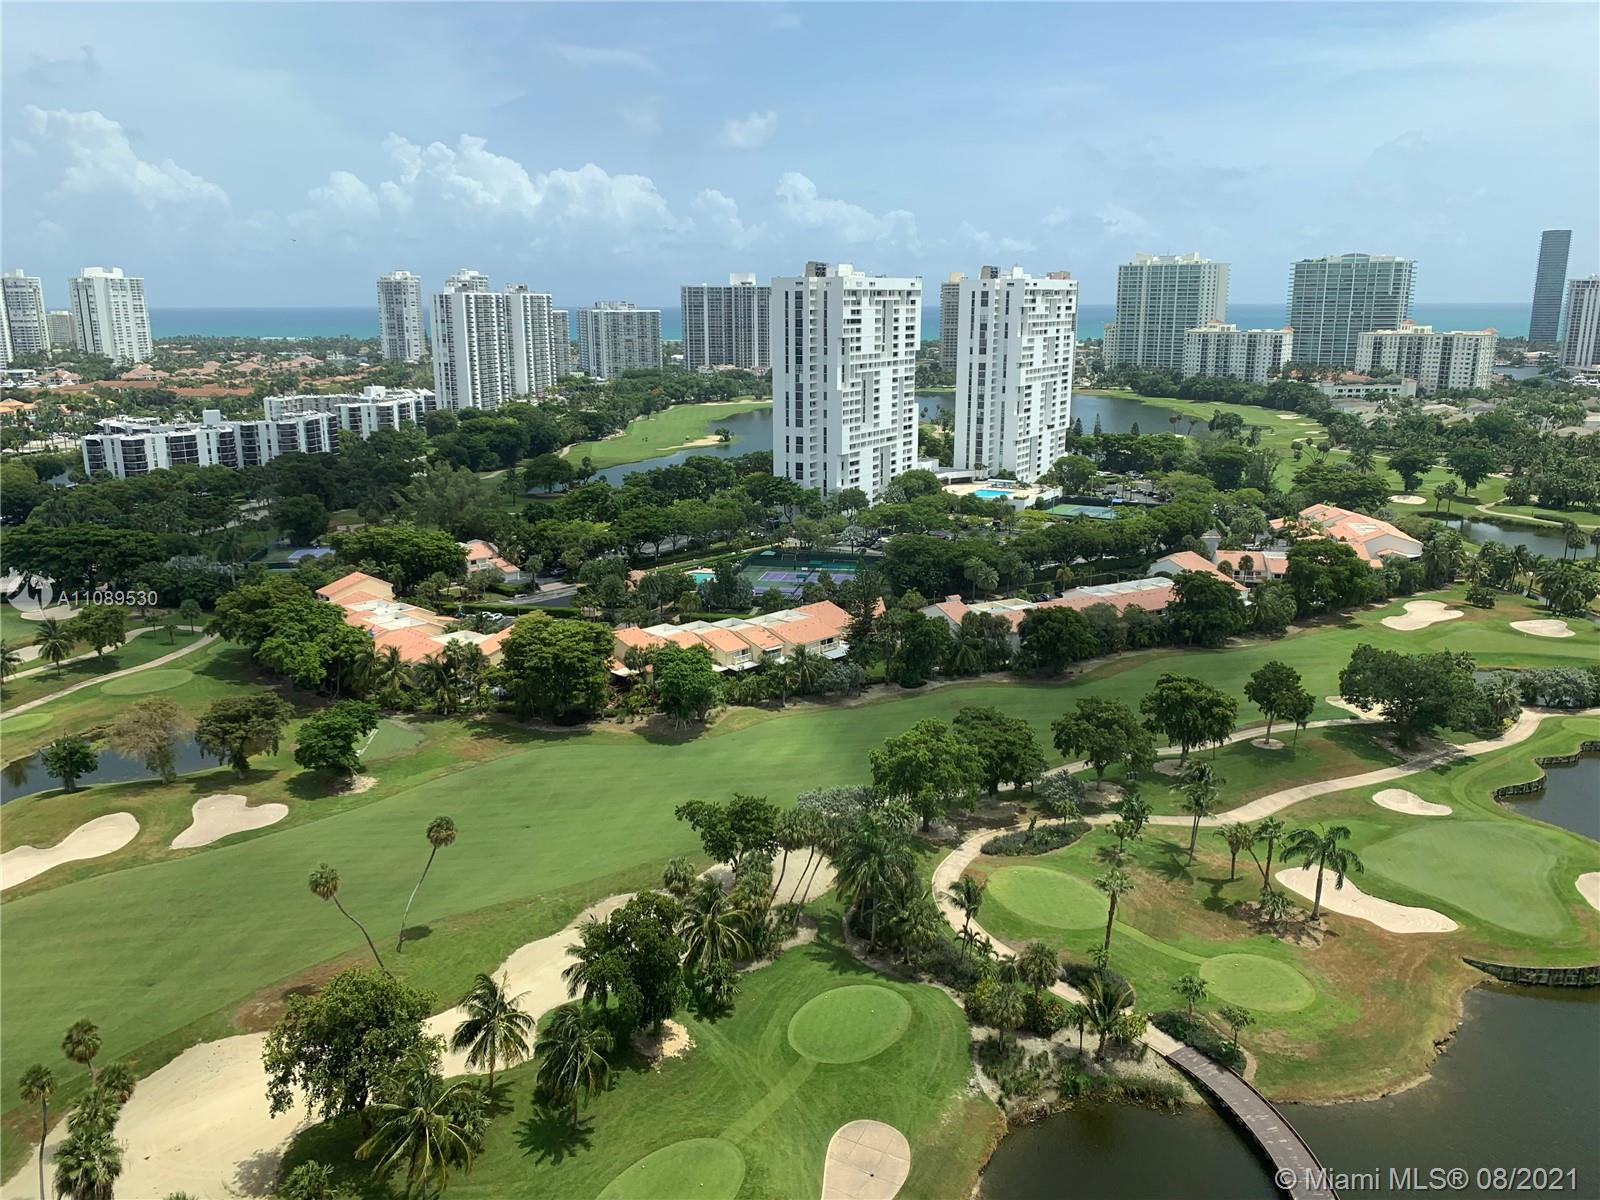 Best views in all of Aventura, golf course, ocean, no building obstructions. Come and feel at home w